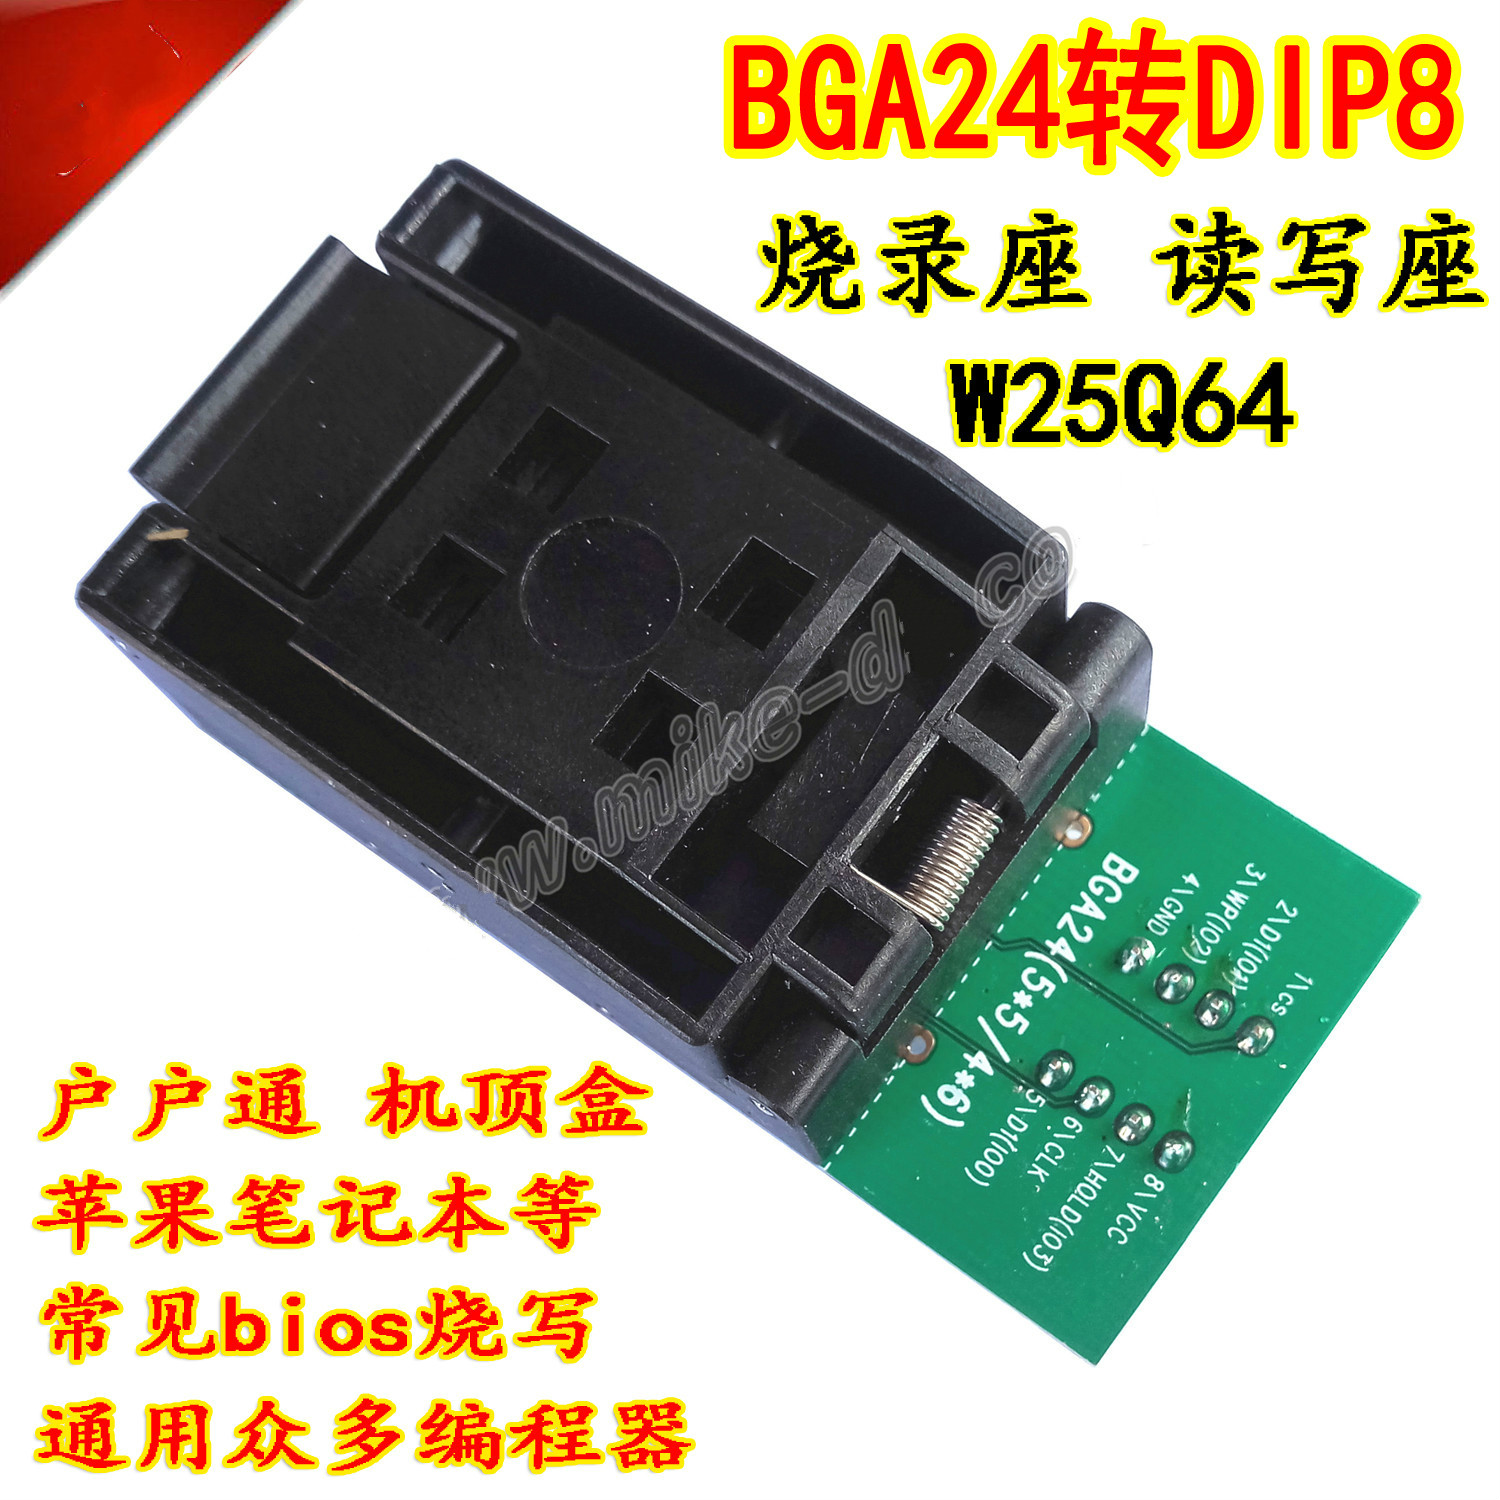 BGA24 Test Seat to DIP8 Burner, 9 Household Top Box Brush Machine Programmer W25Q64 BurnBGA24 Test Seat to DIP8 Burner, 9 Household Top Box Brush Machine Programmer W25Q64 Burn